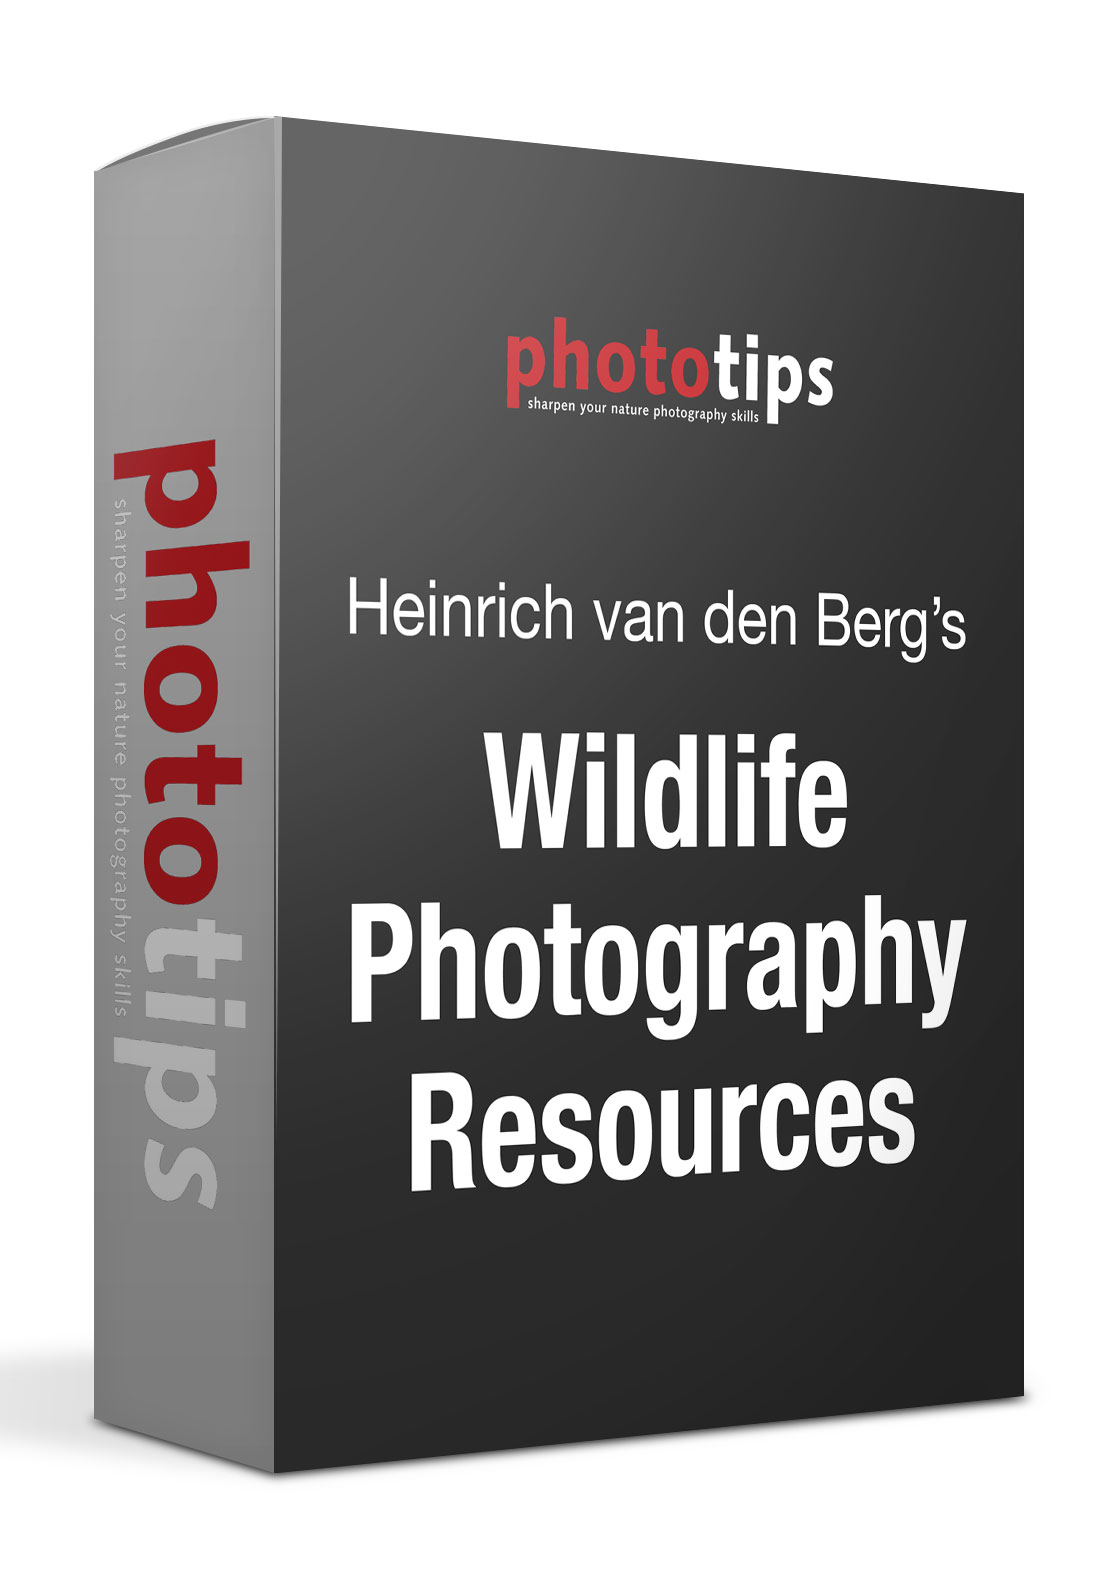 phototips resources